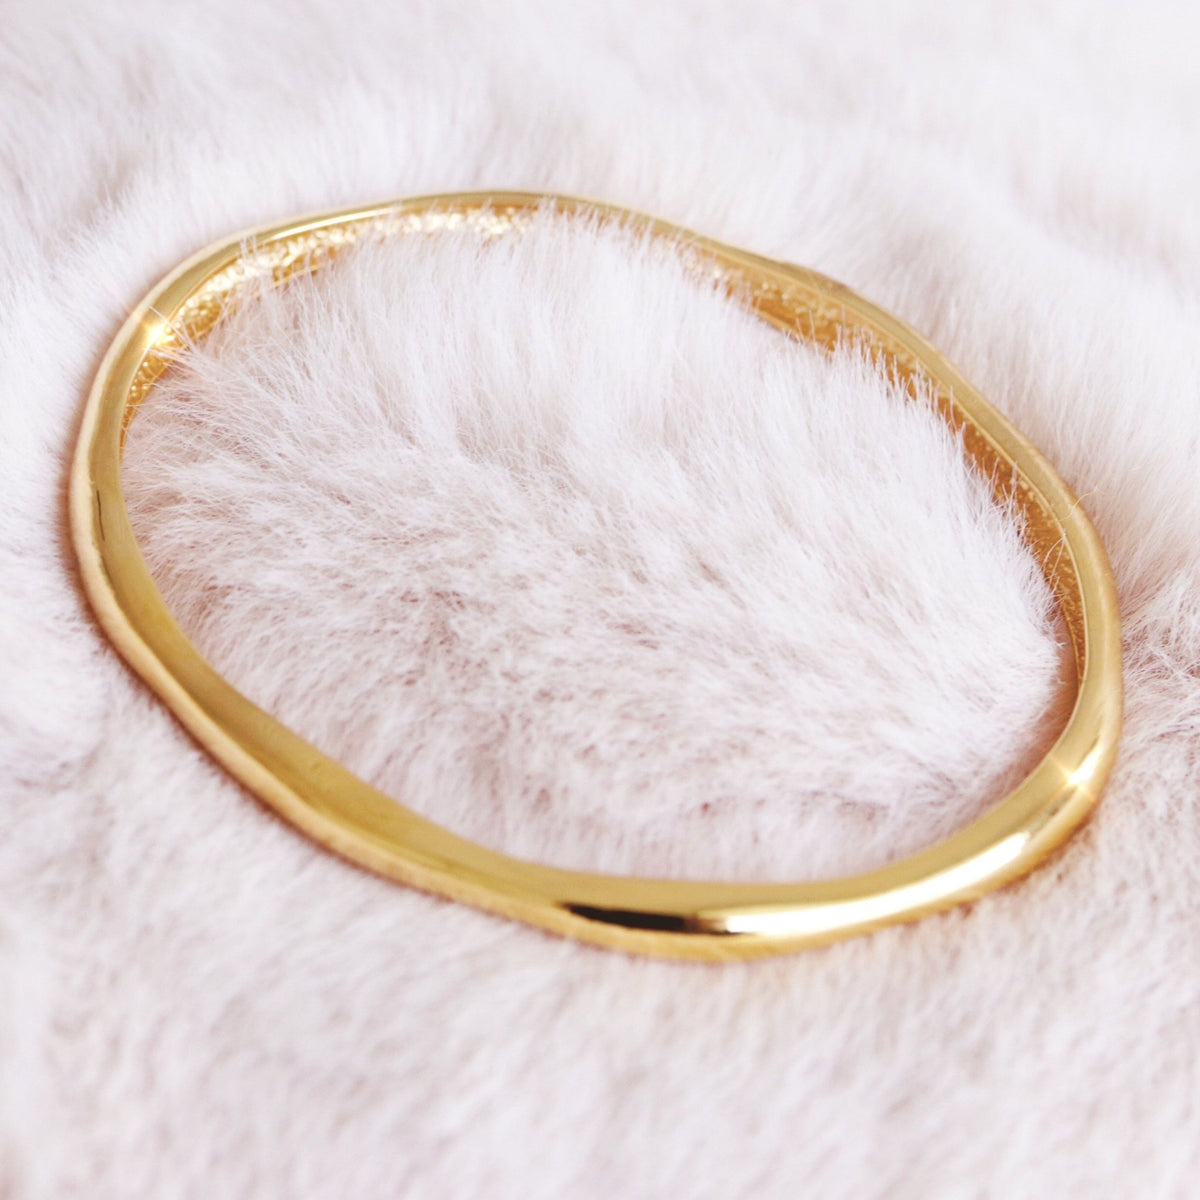 POISE OVAL BANGLE - GOLD - SO PRETTY CARA COTTER